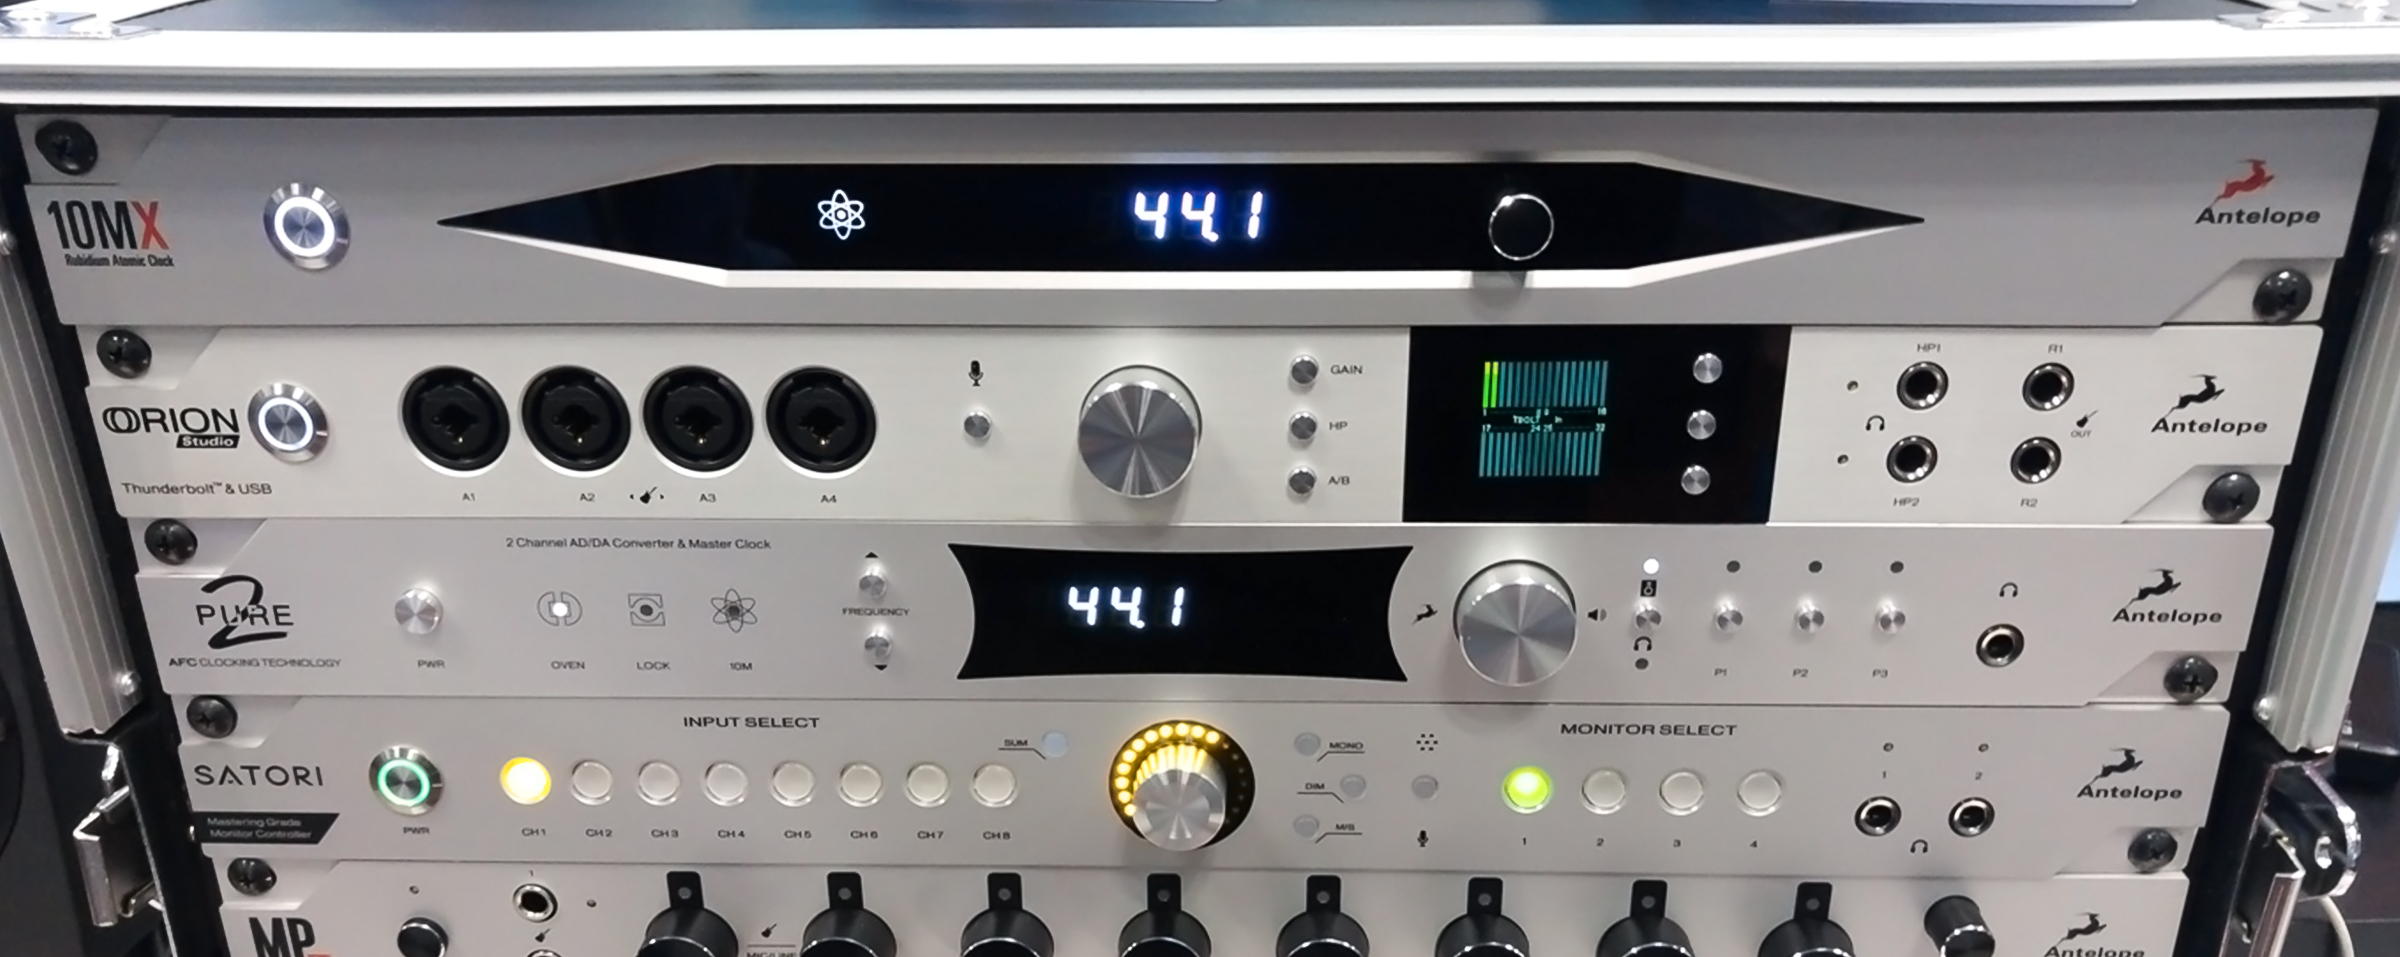 10mx The Hottest Member Of The Antelope Audio Isochrone